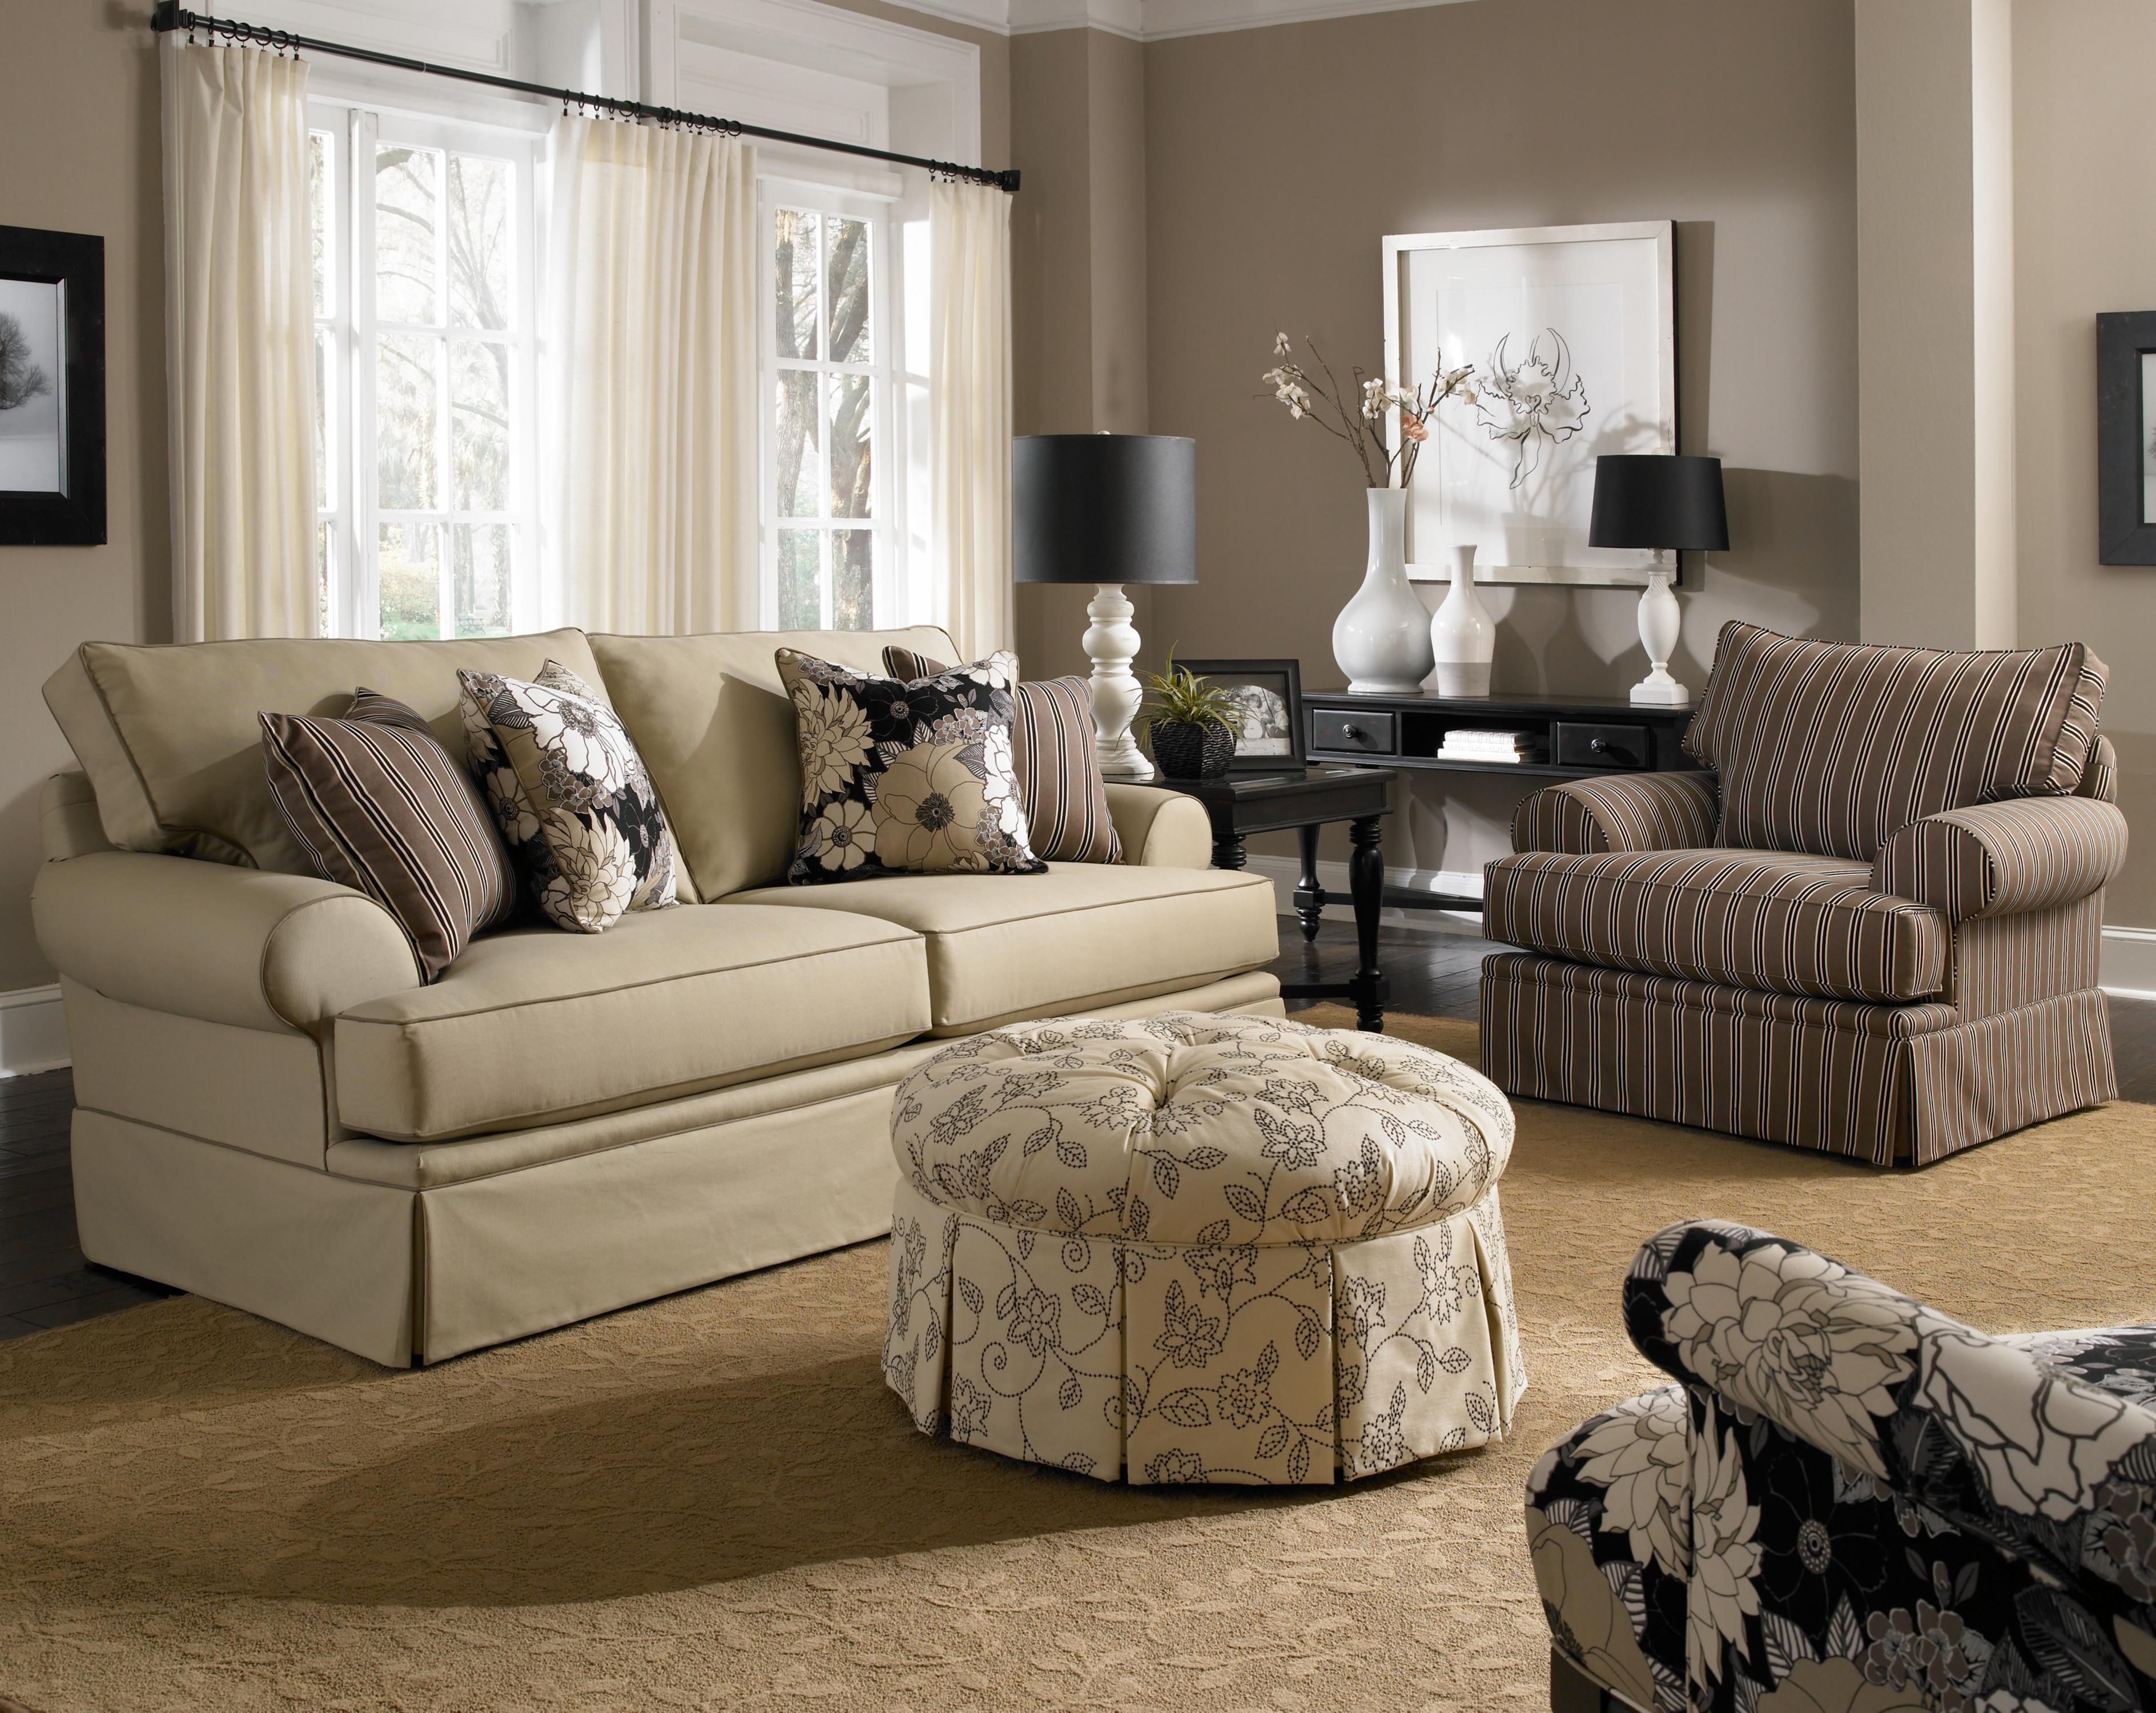 Broyhill Furniture Emily Stationary Living Room Group - Item Number: 6262 Living Room Group 1